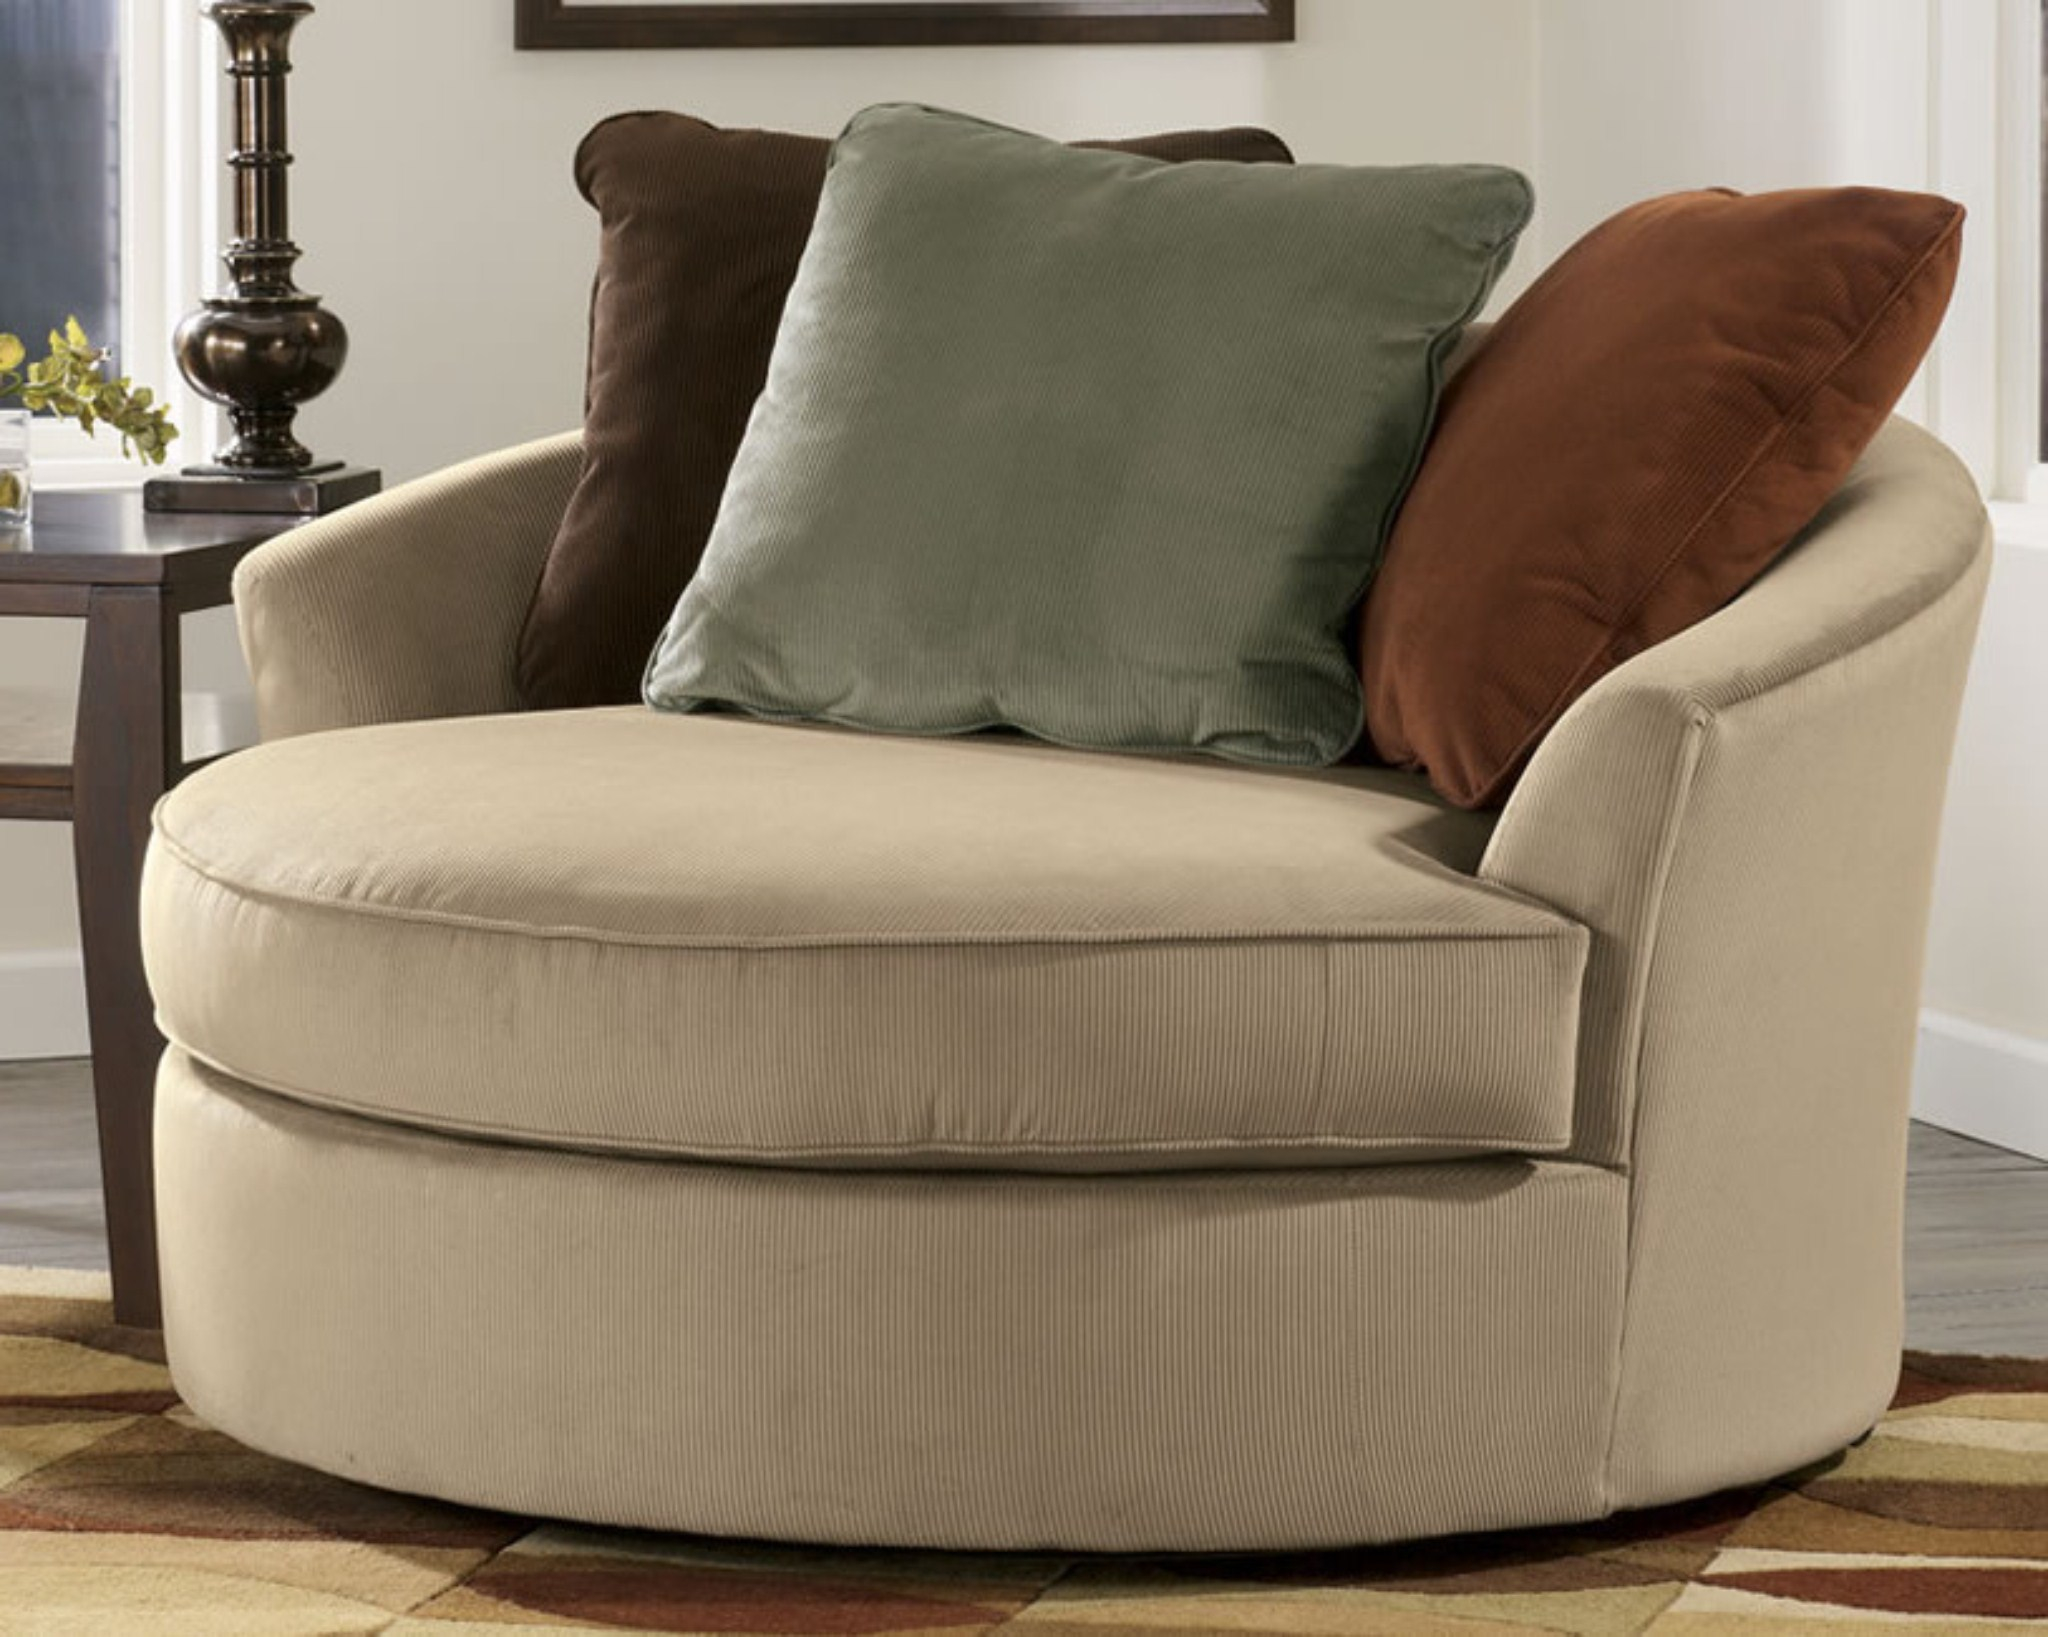 Round Living Room Chairs Living Room Elegant Swivel Chairs Living Room  Furniture Leather